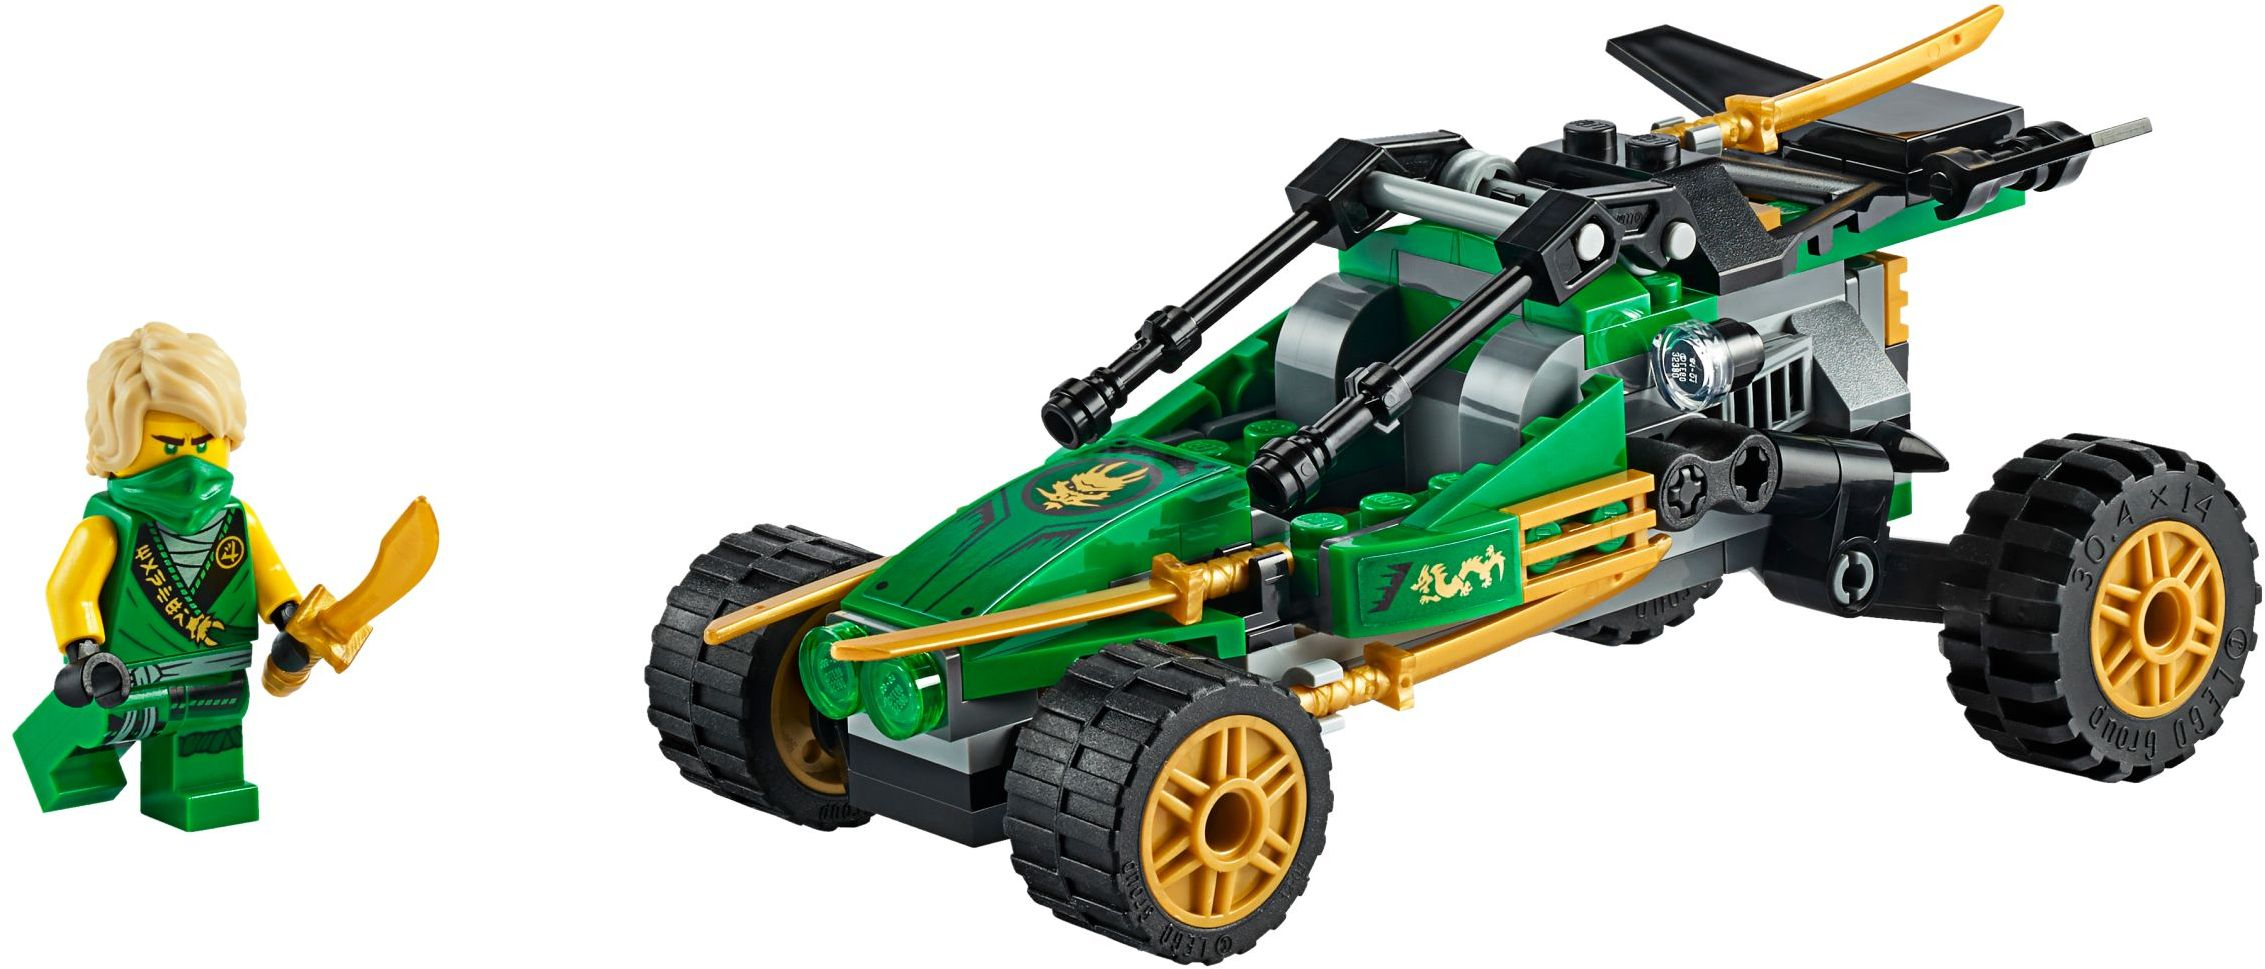 LEGO Ninjago - Jungle Raider (71700)